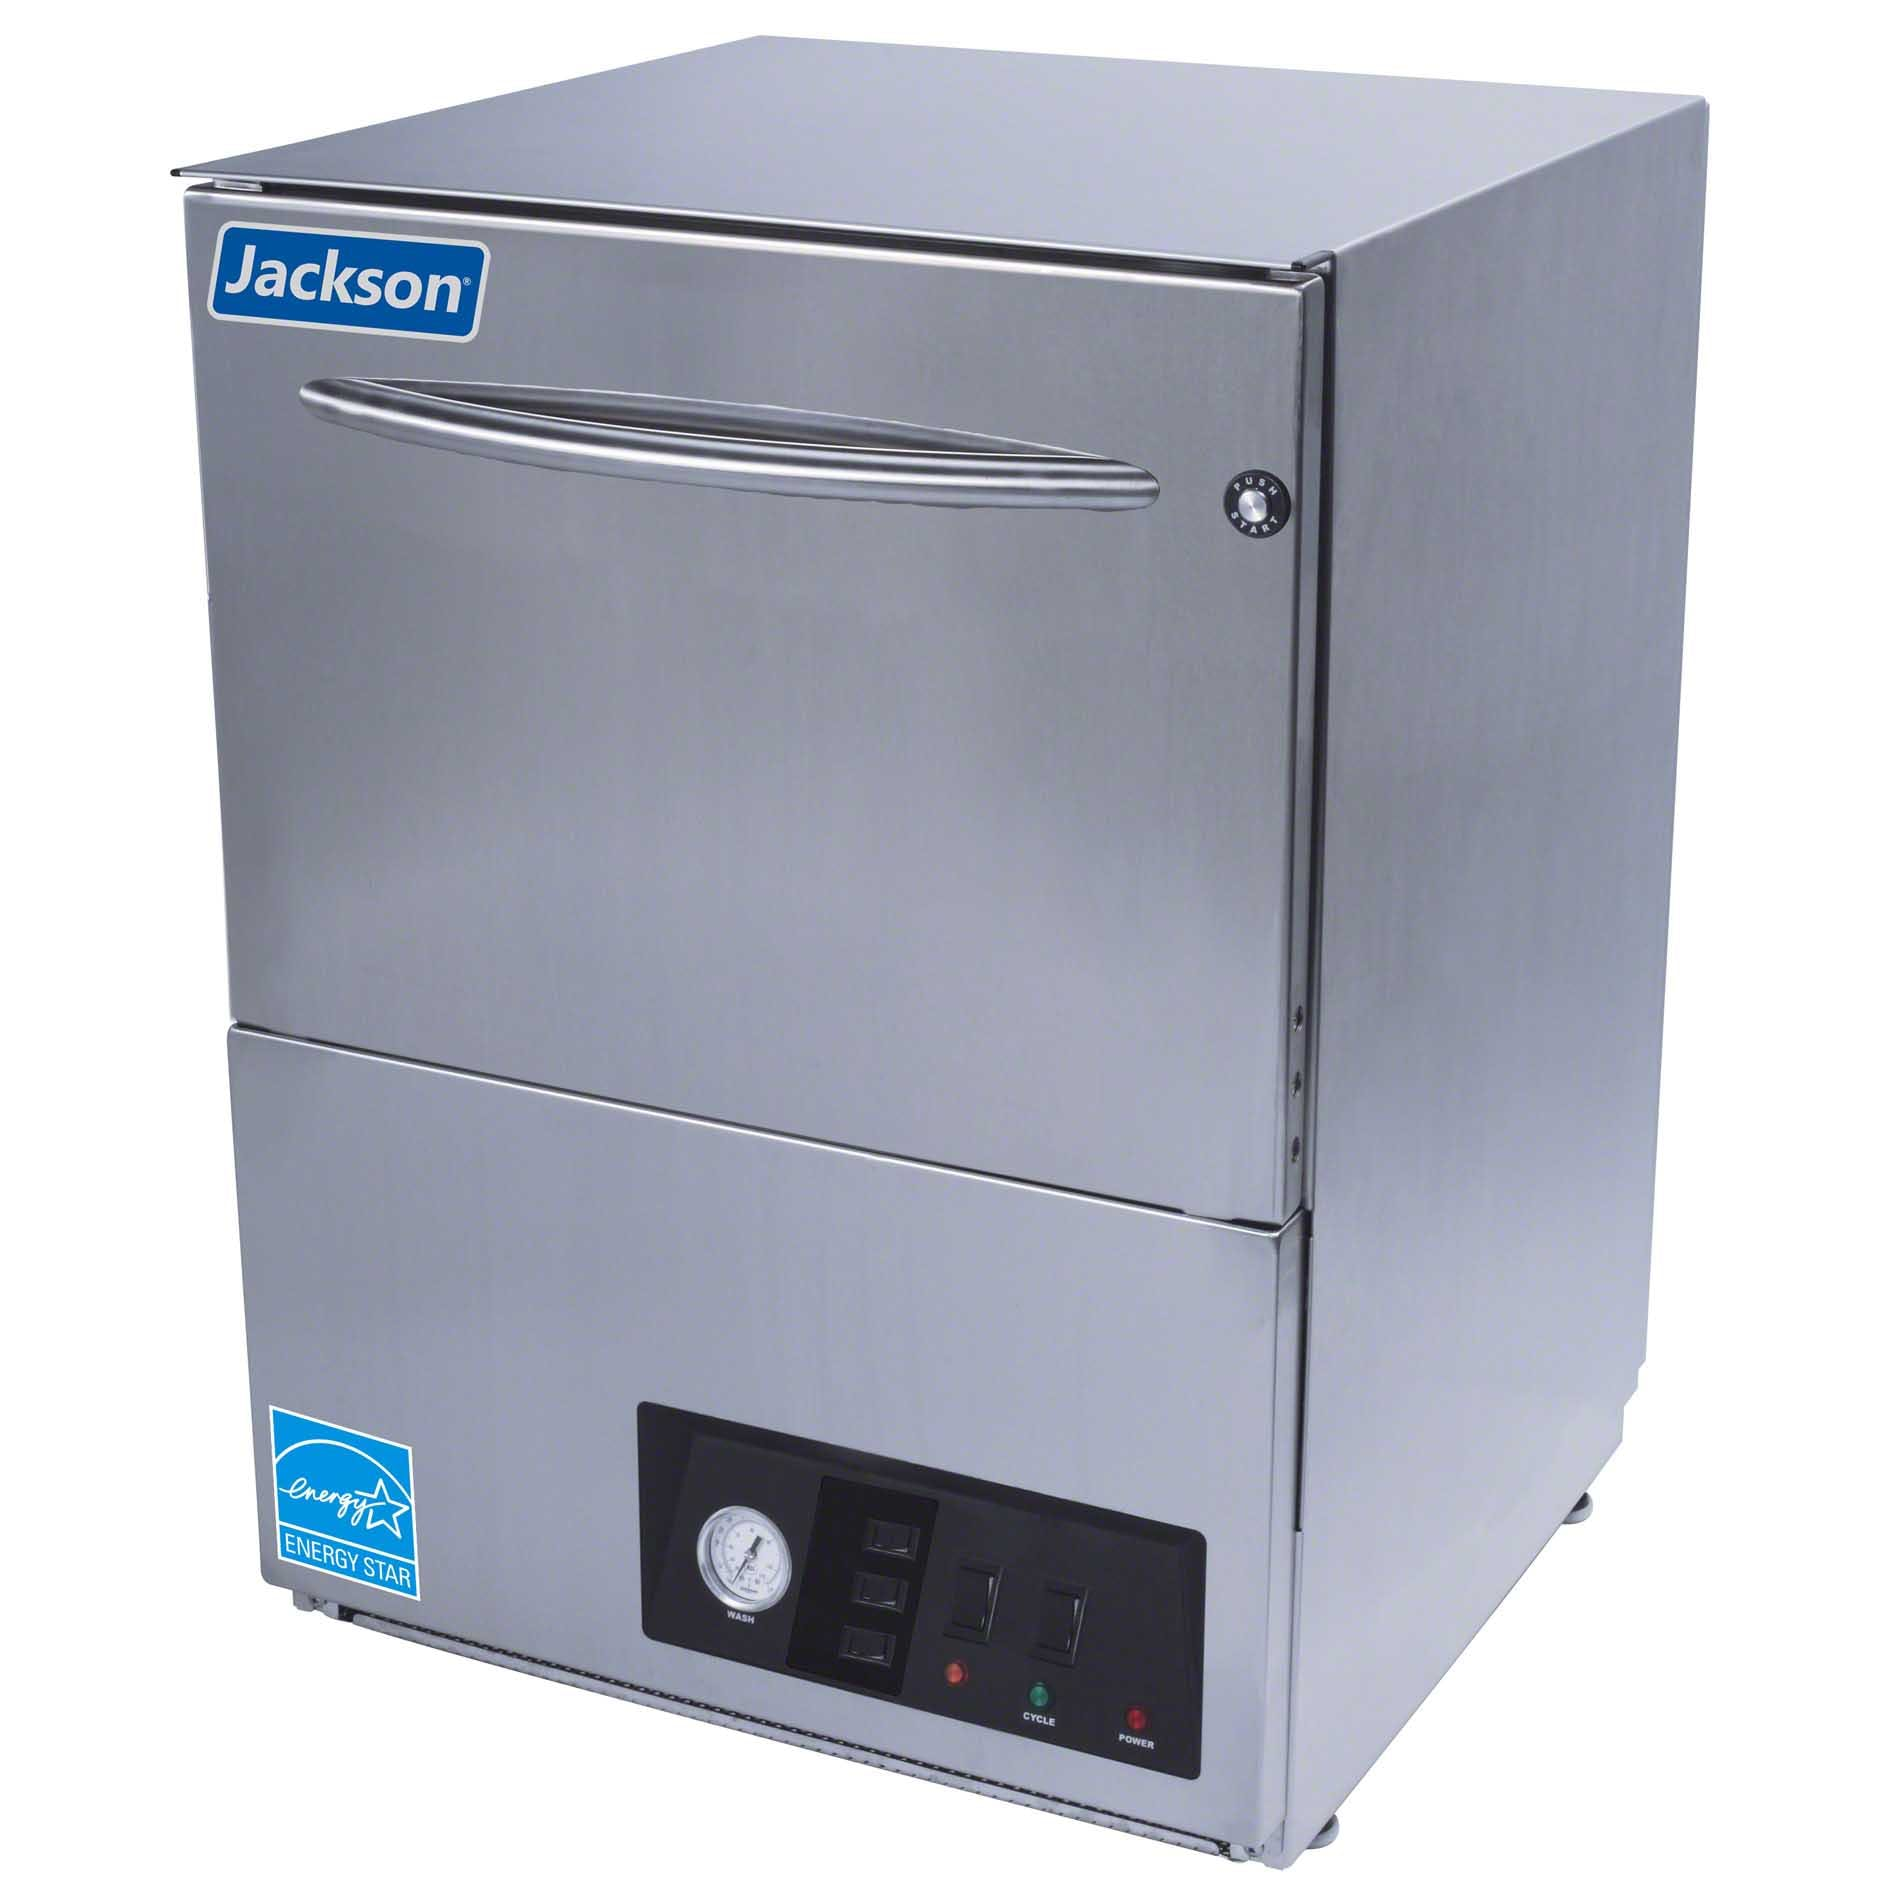 Jackson - Avenger LT 24 Rack/Hr Low-Temp Undercounter Dishwasher Commercial dishwasher sold by Food Service Warehouse